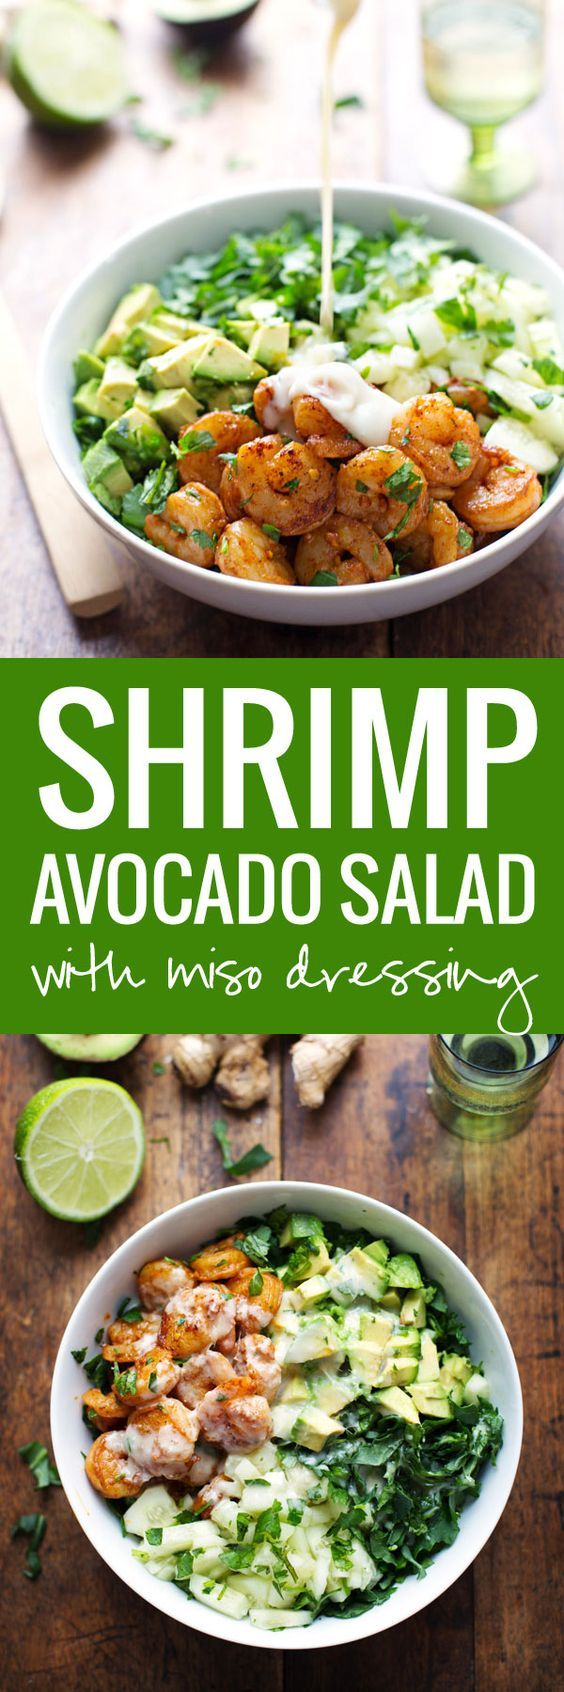 This Spicy Shrimp and Avocado Salad has cucumbers, baby kale, shrimp, and avocado with a creamy miso dressing. SO YUMMAY.   pinchofyum.com